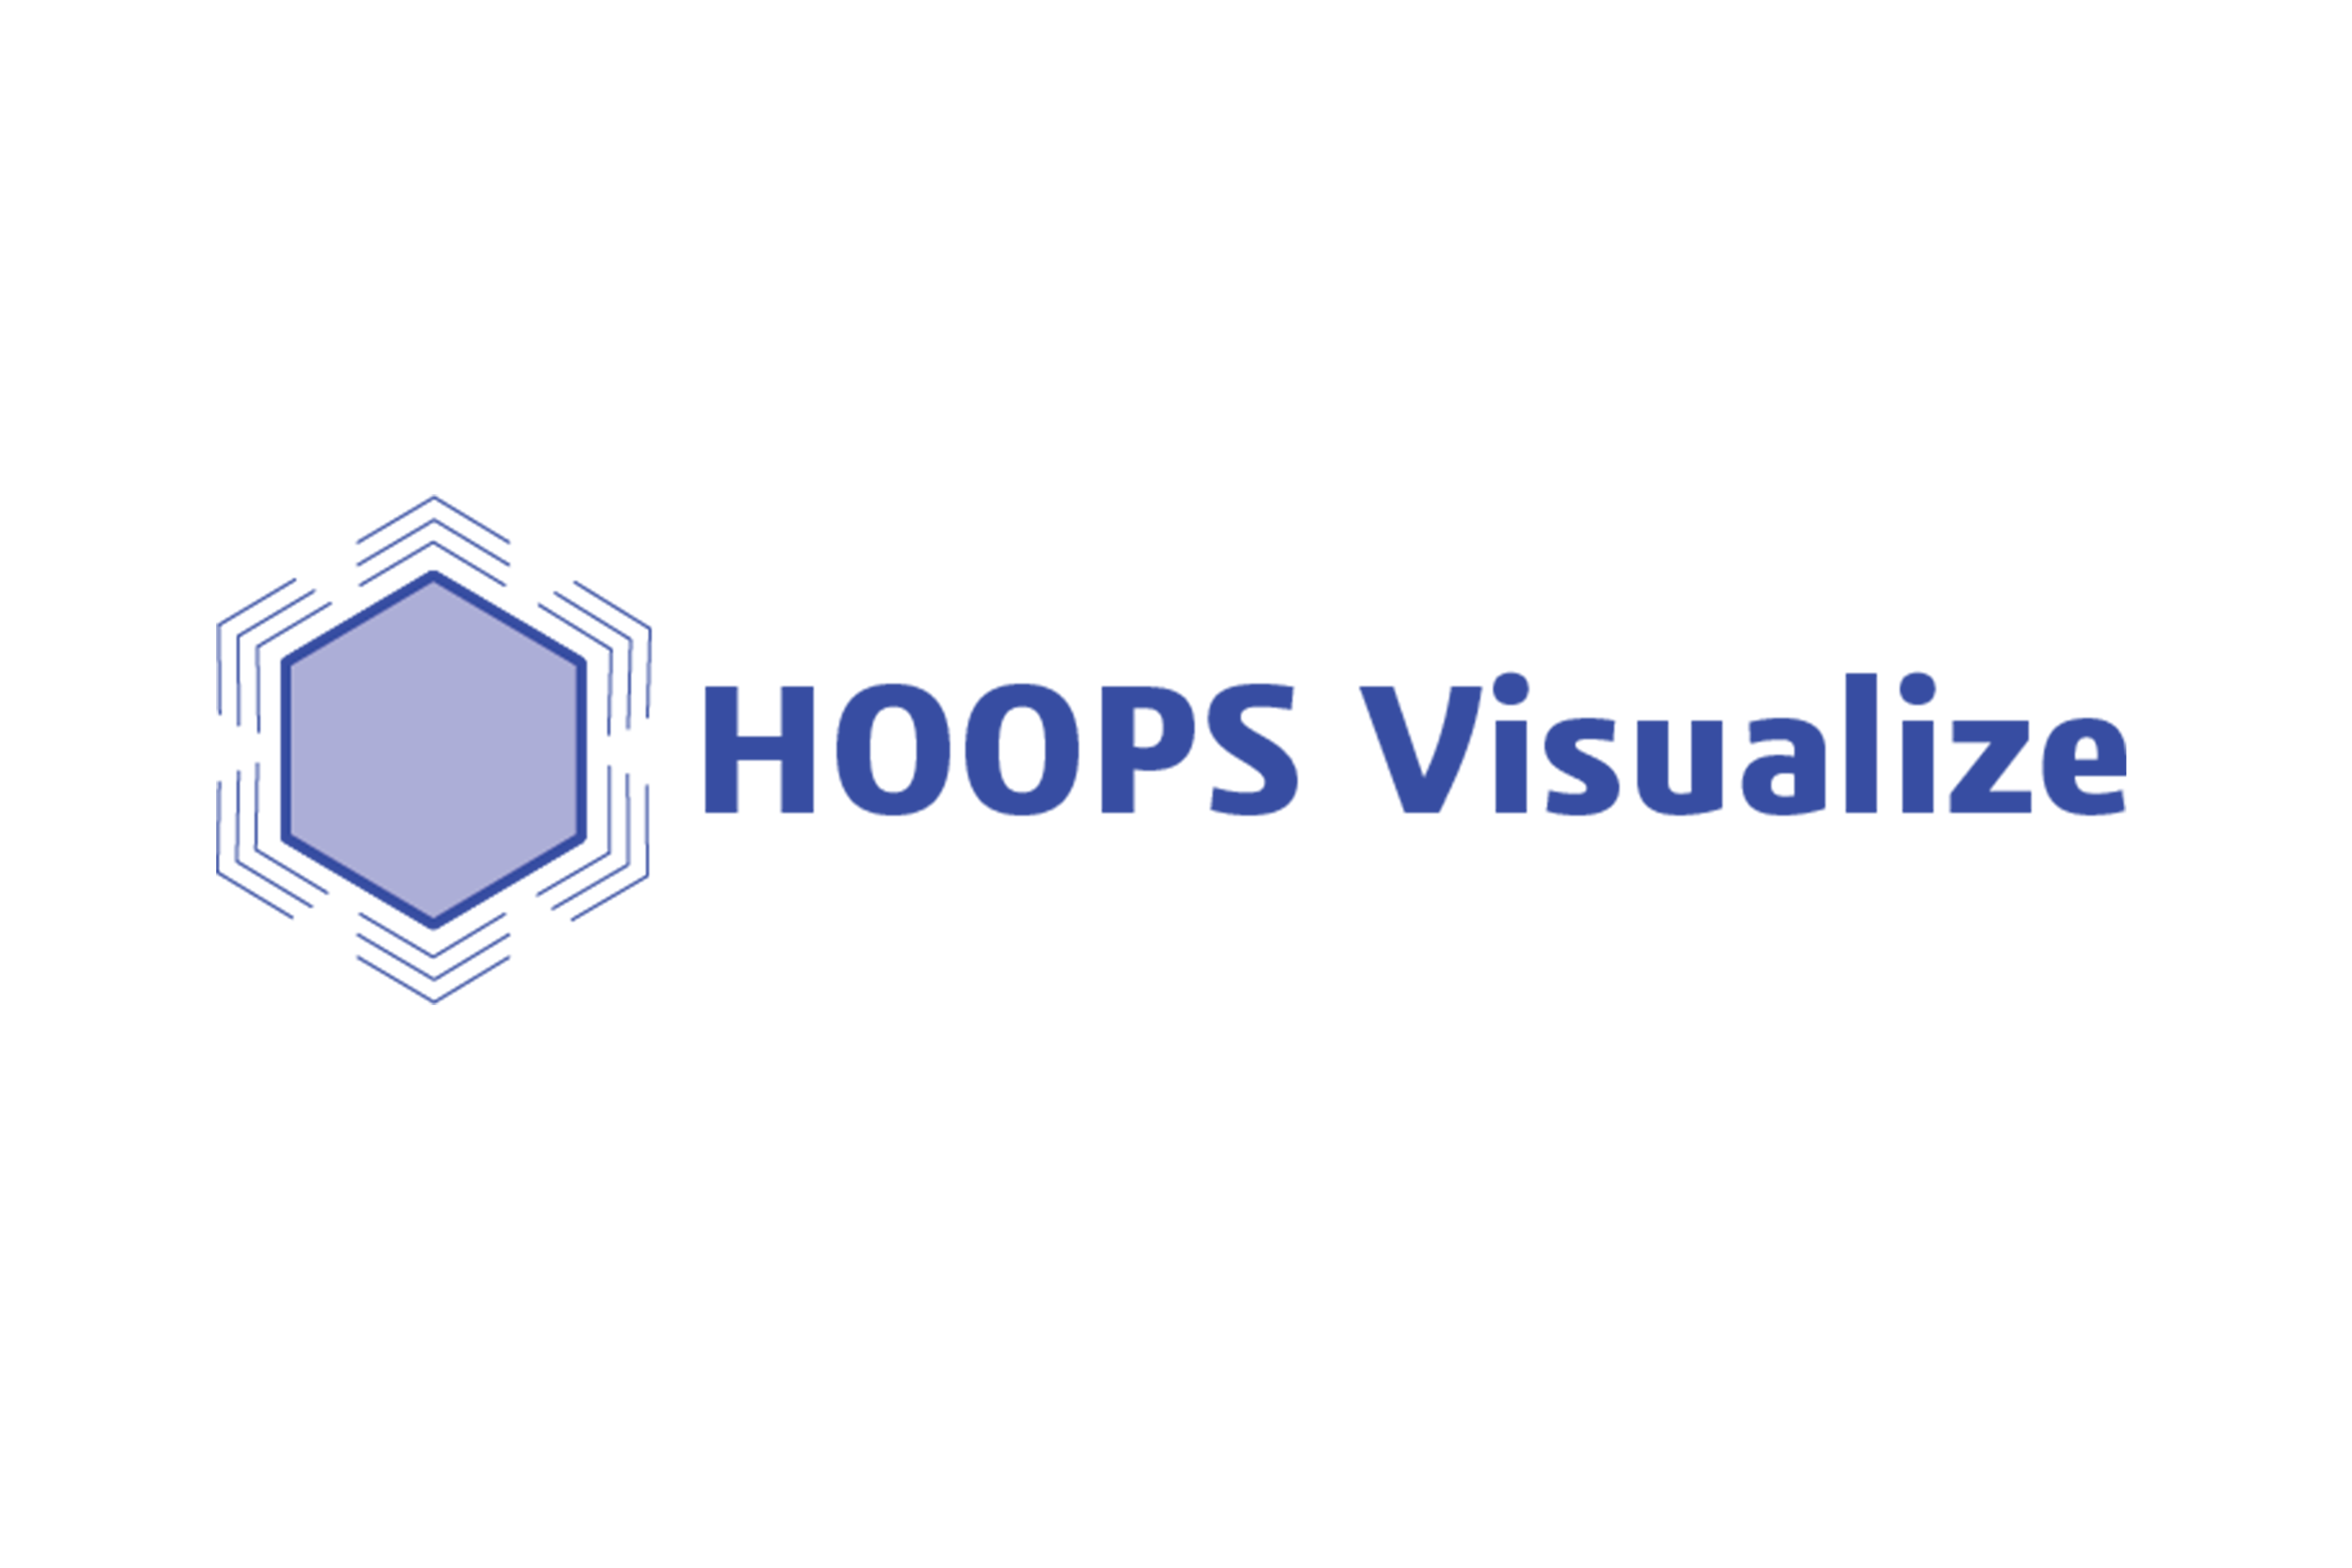 HOOPS Visualize